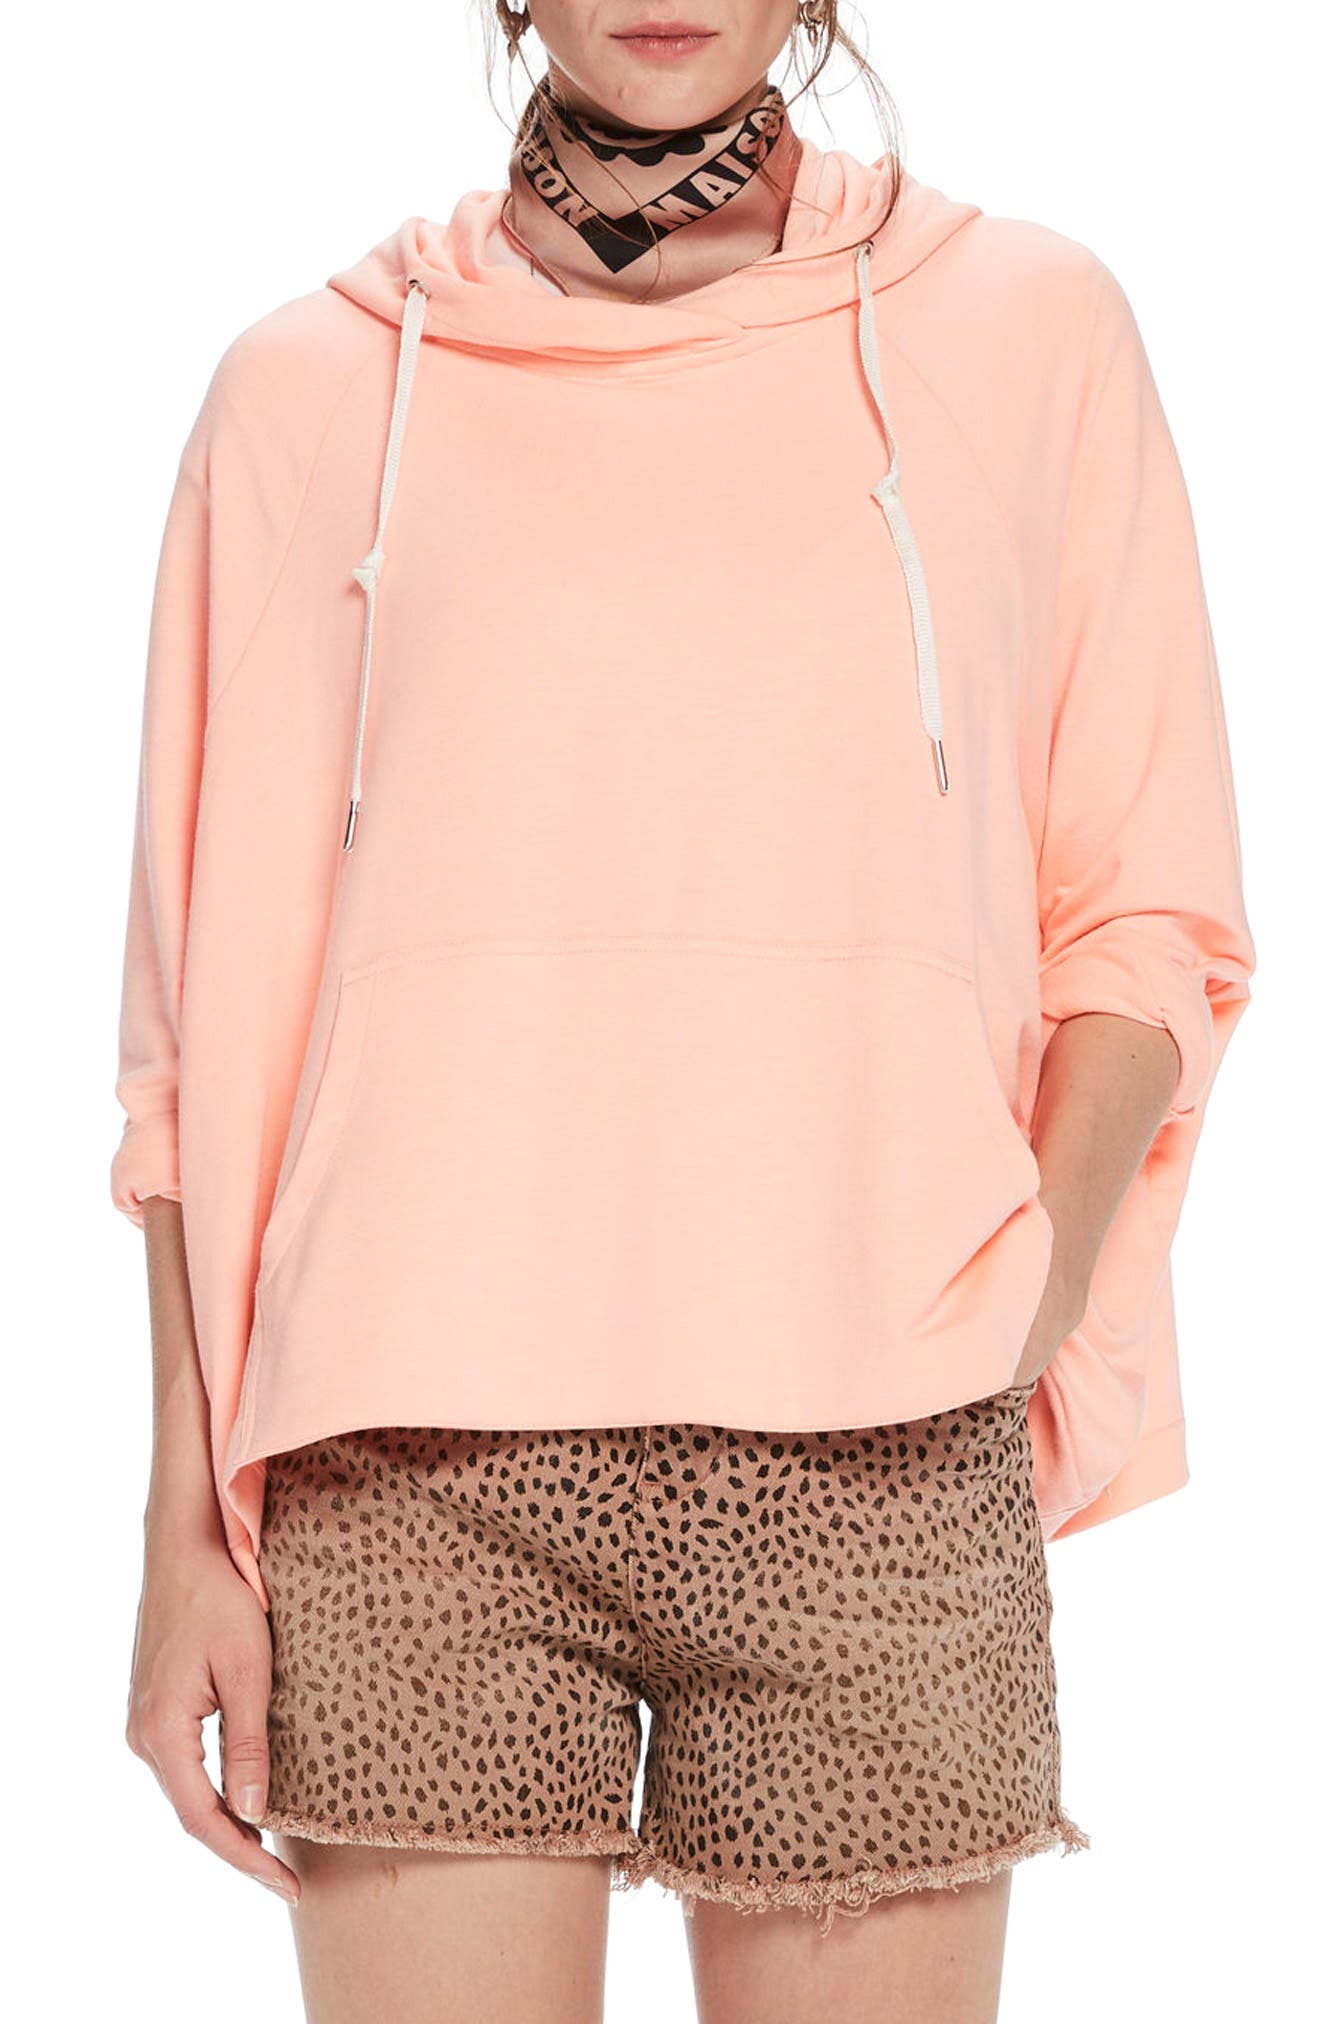 Boxy Fit Hoodie,                             Main thumbnail 1, color,                             COLOR 2015 CORAL